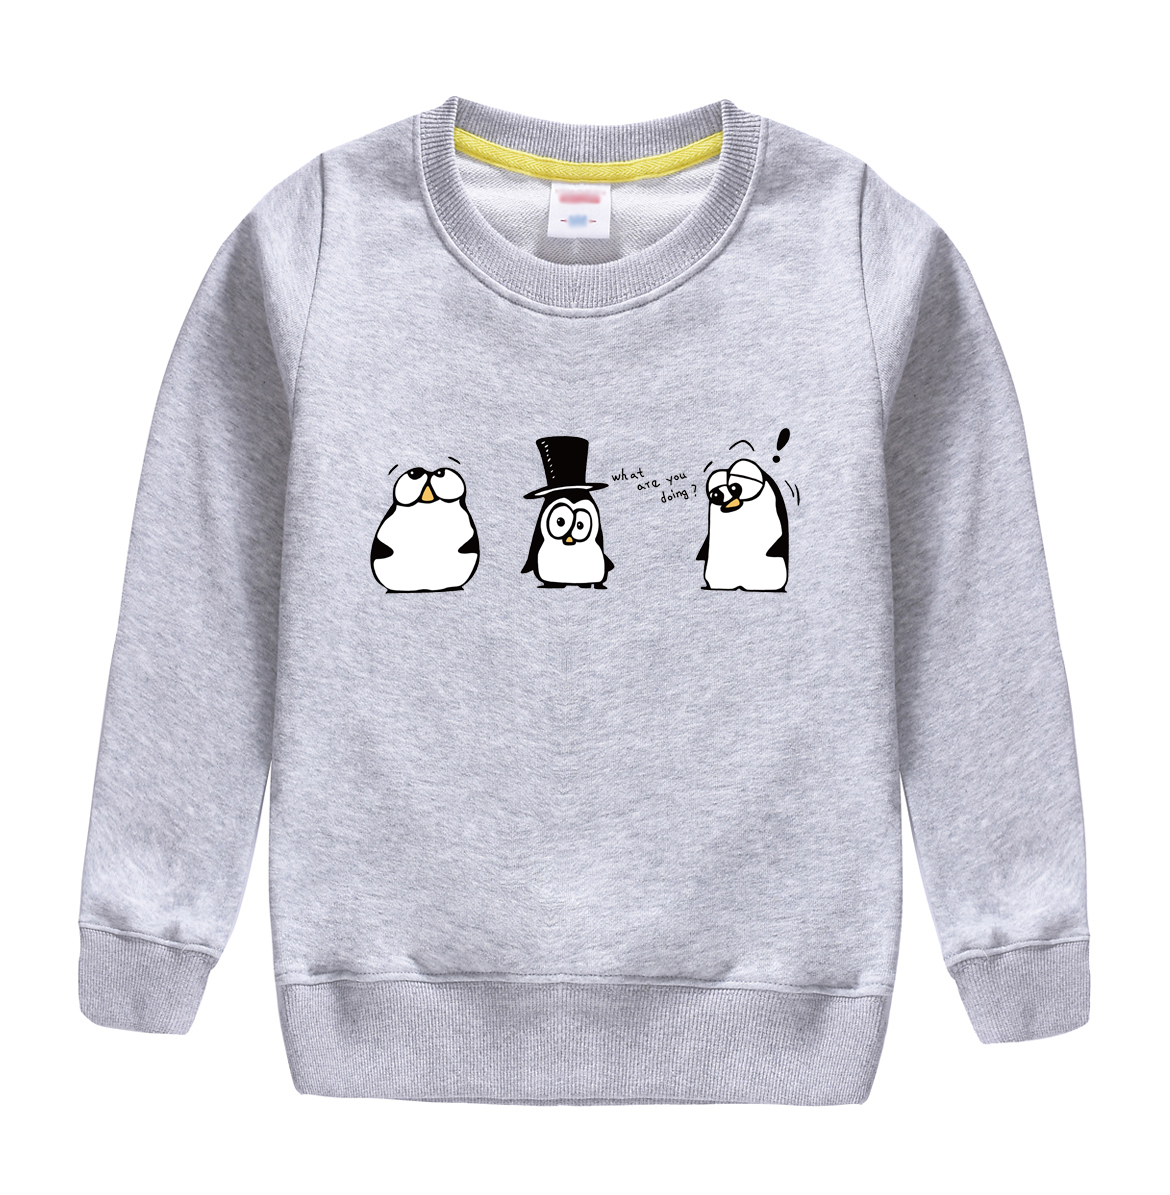 """what are you doing""pattern printed 2017 new fashion cotton sweatshirt , keeping warm and Non-fading , design for children"